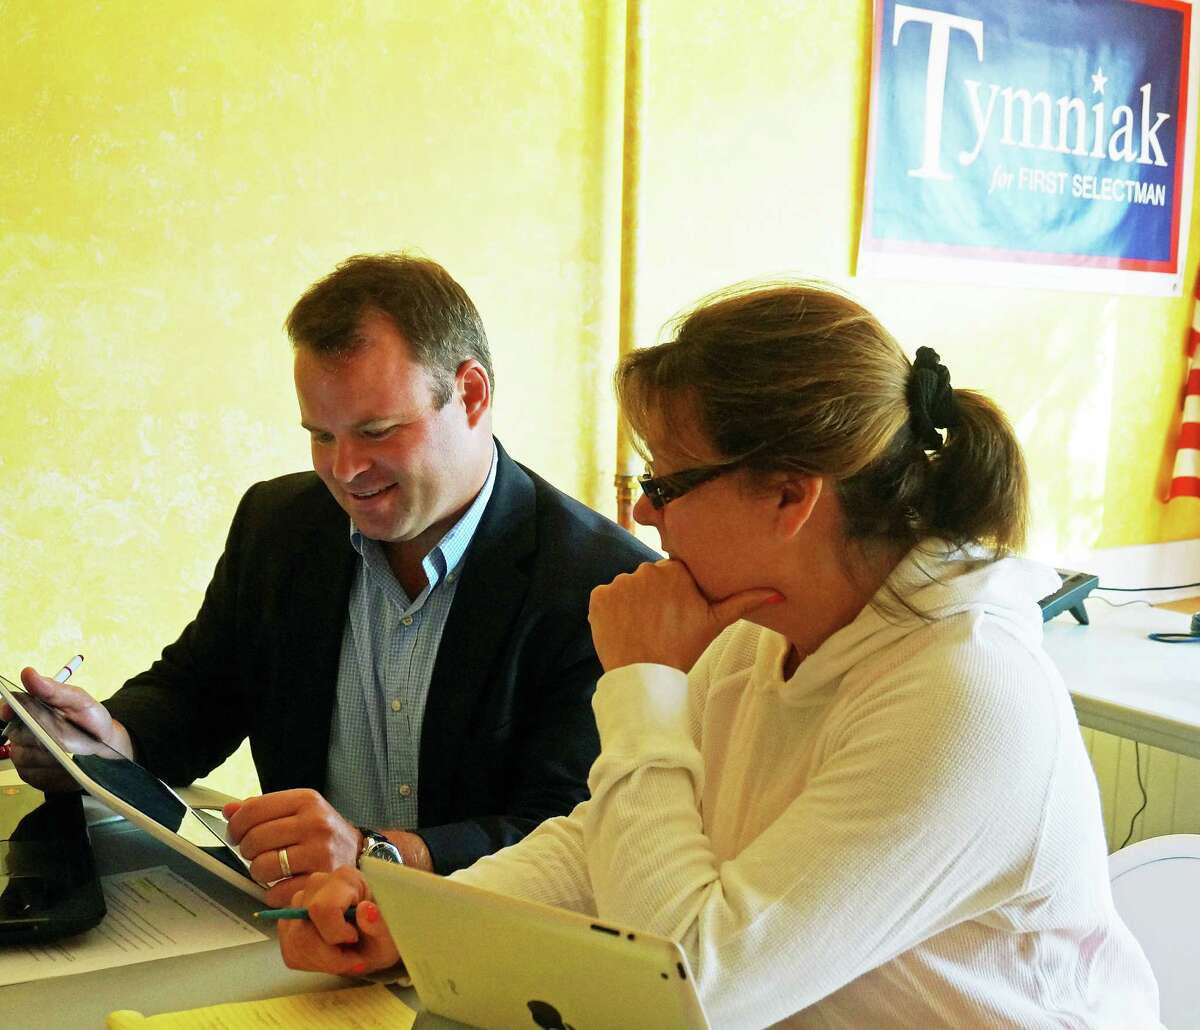 Republican first selectman candidate Chris Tymniak goes over some plans with running mate Laurie McArdle at their Unquowa Road headquarters.